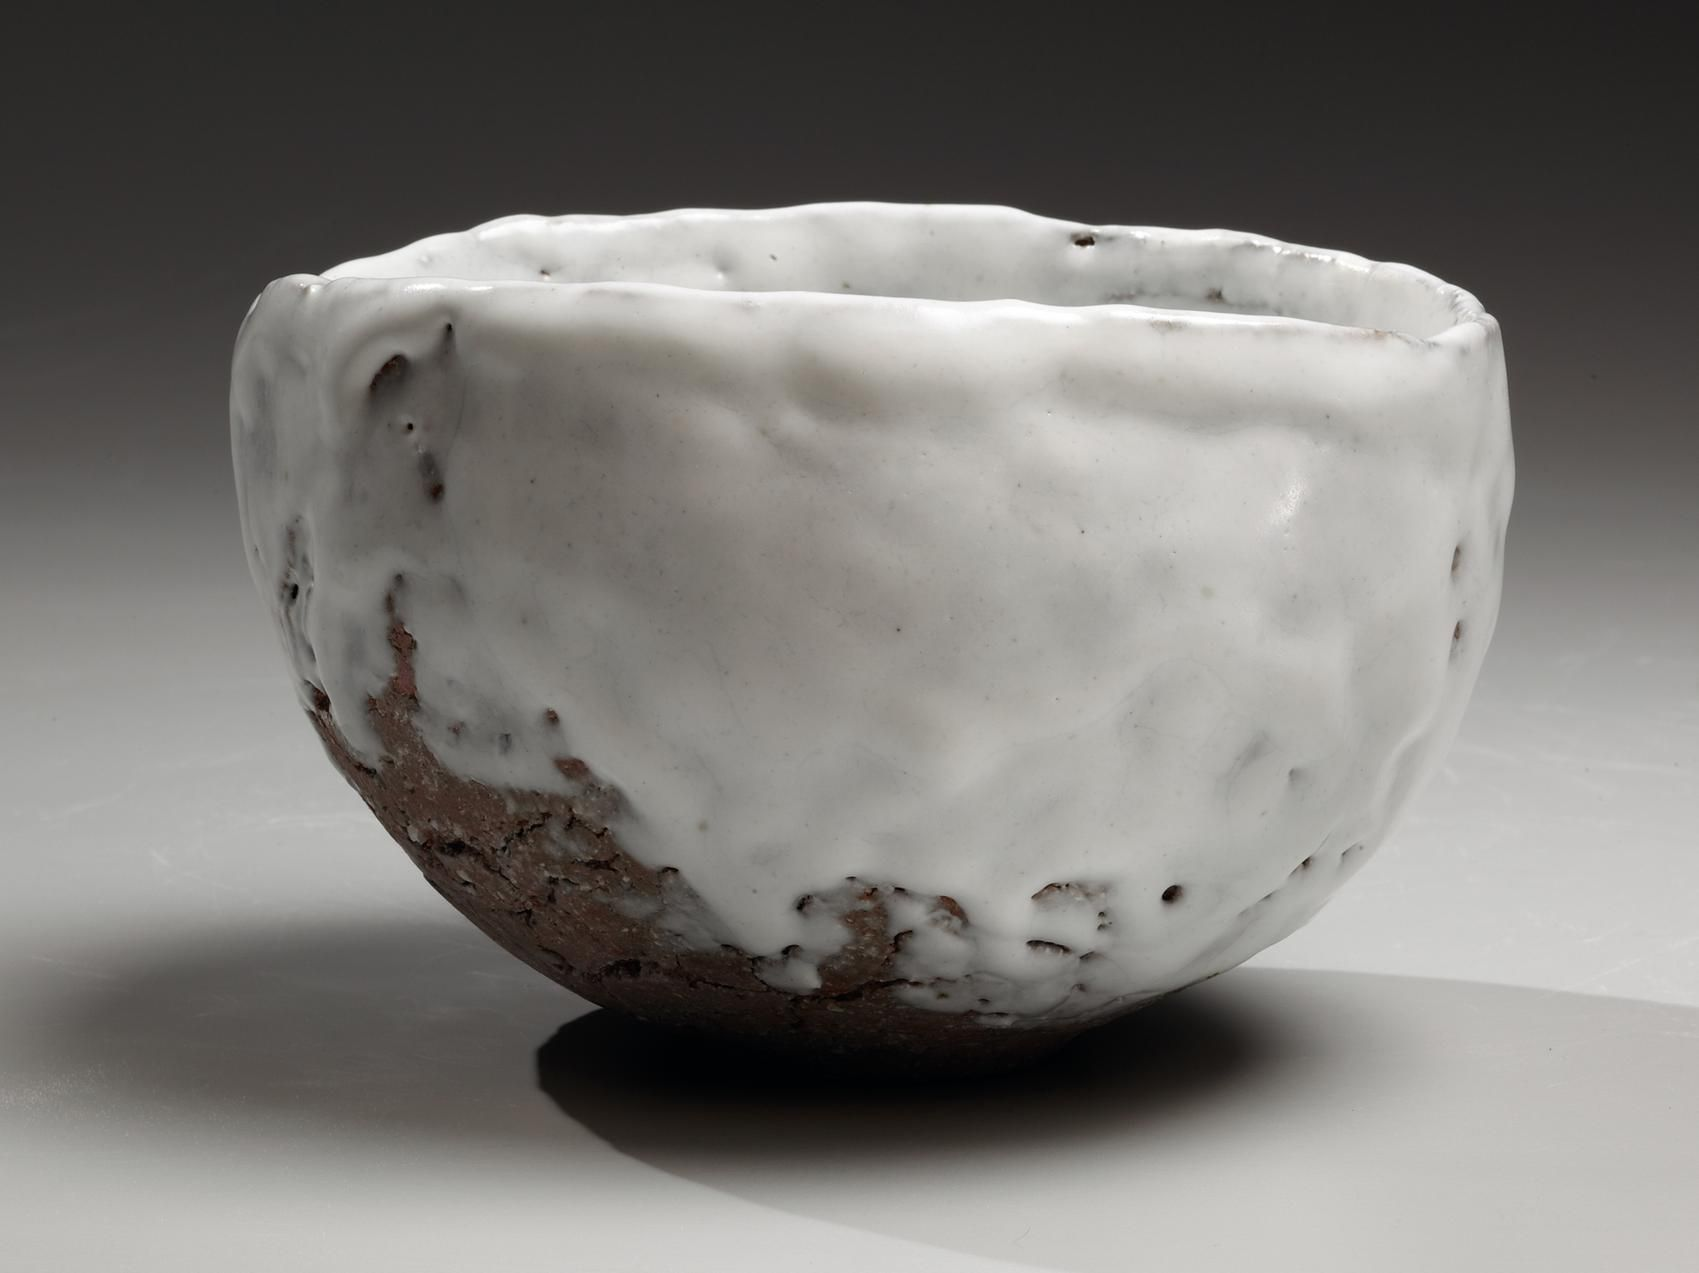 Round teabowl with unctuous white glaze over feldspar-infused crackled clay body, 2014